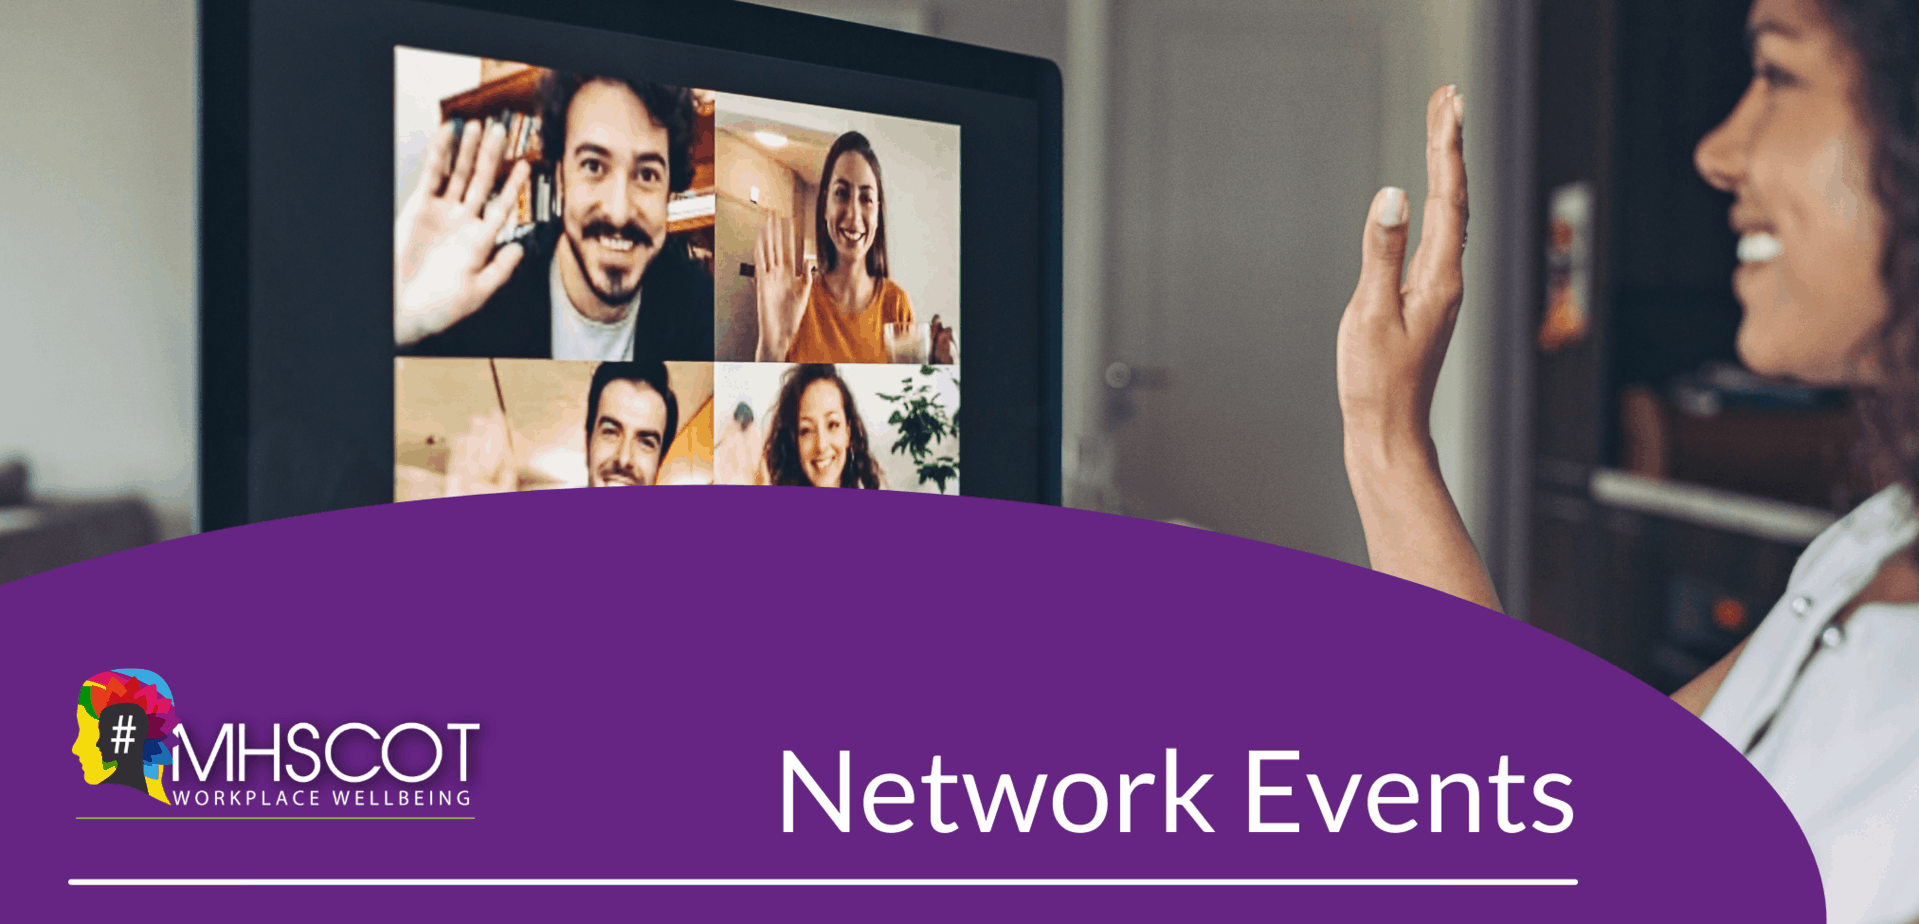 Image of Network Eventss